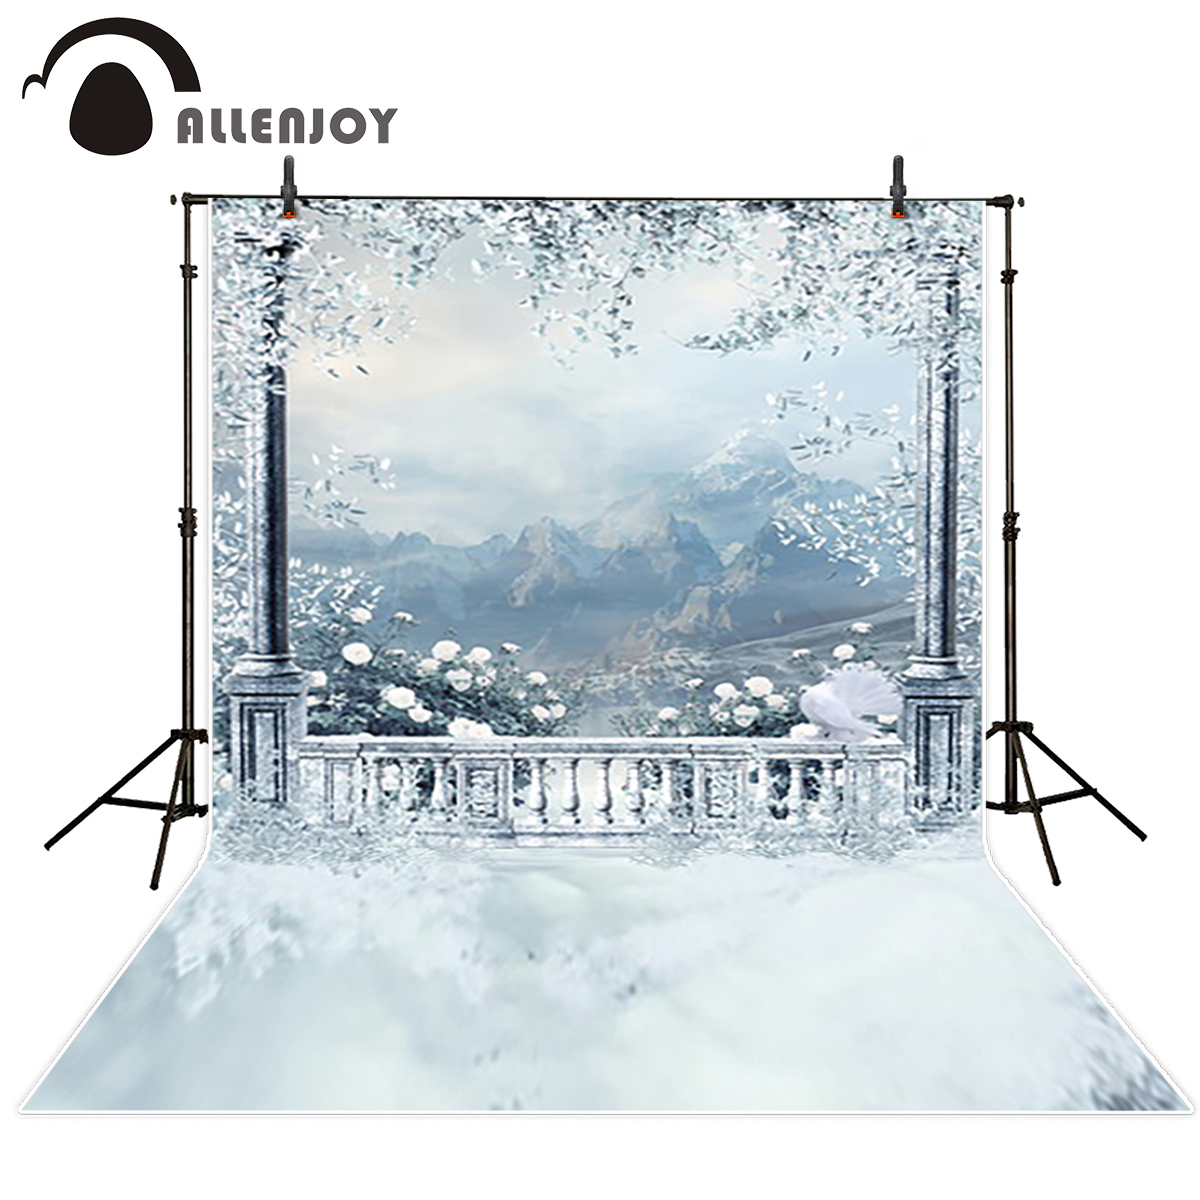 Allenjoy photo backdrops ice snow castle mountain winter background photocall photographic photo studio photobooth dunlop sp winter ice 02 205 65 r15 94t